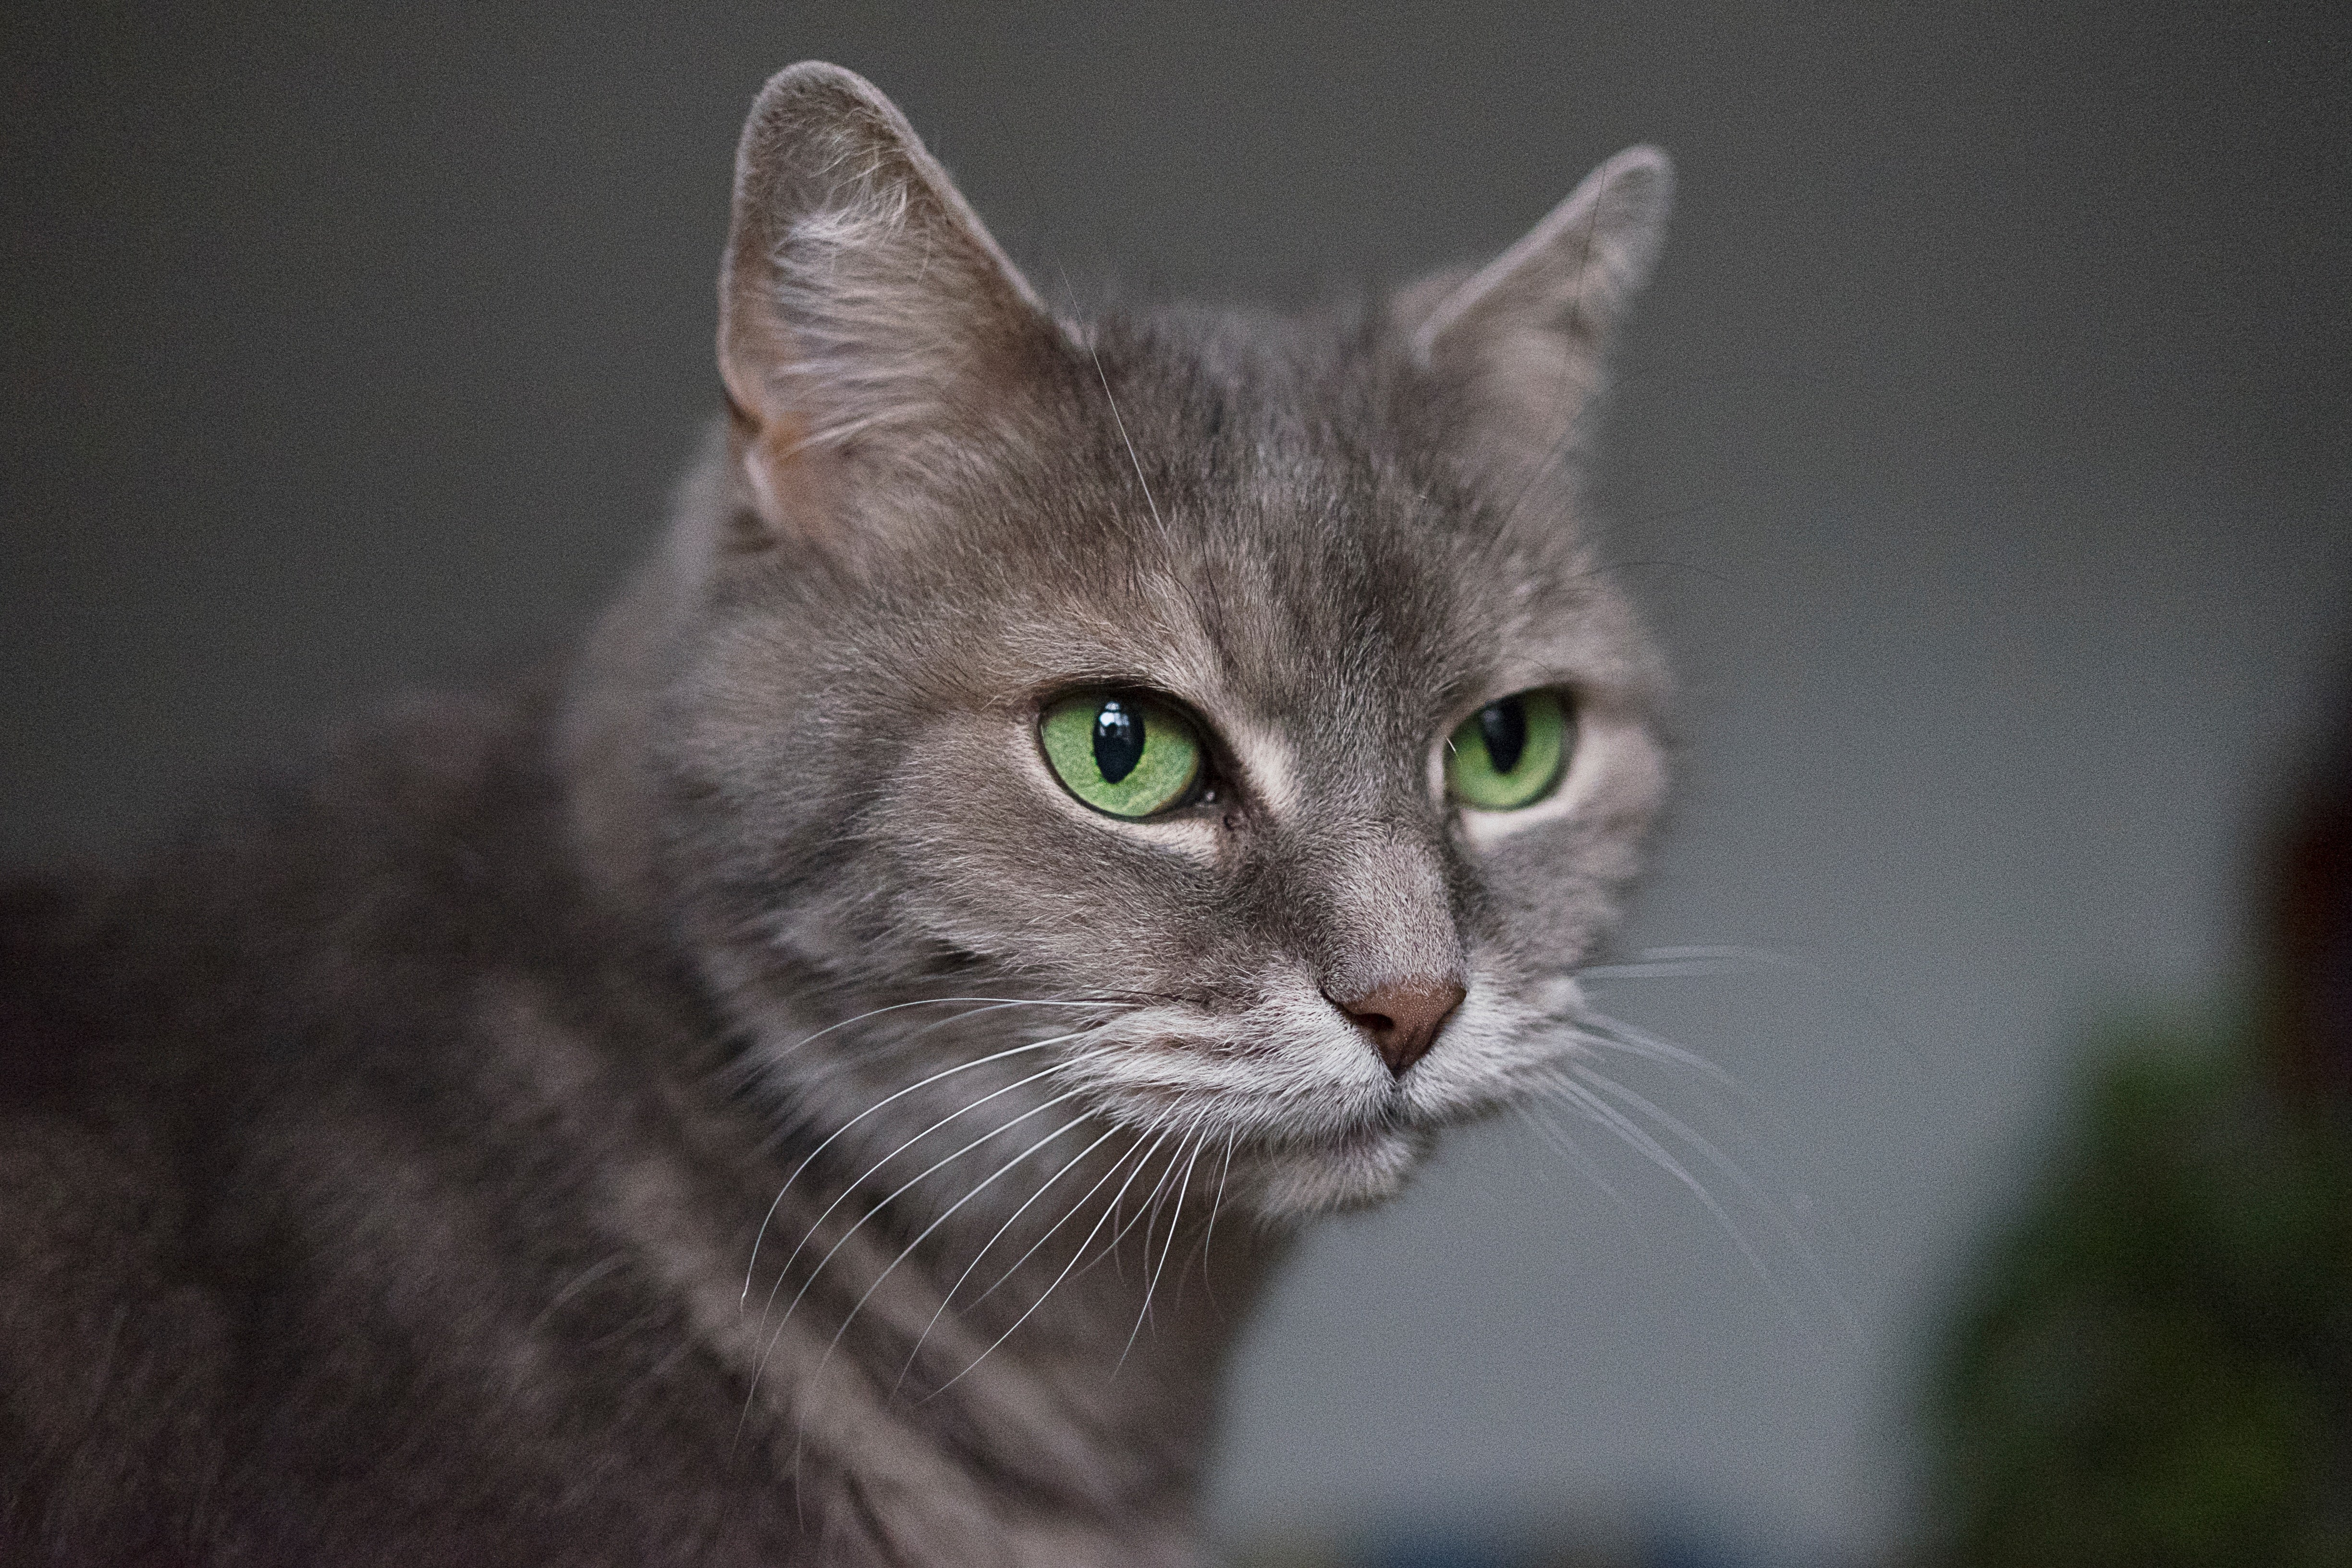 Gray cat with green eyes in article about cat headaches